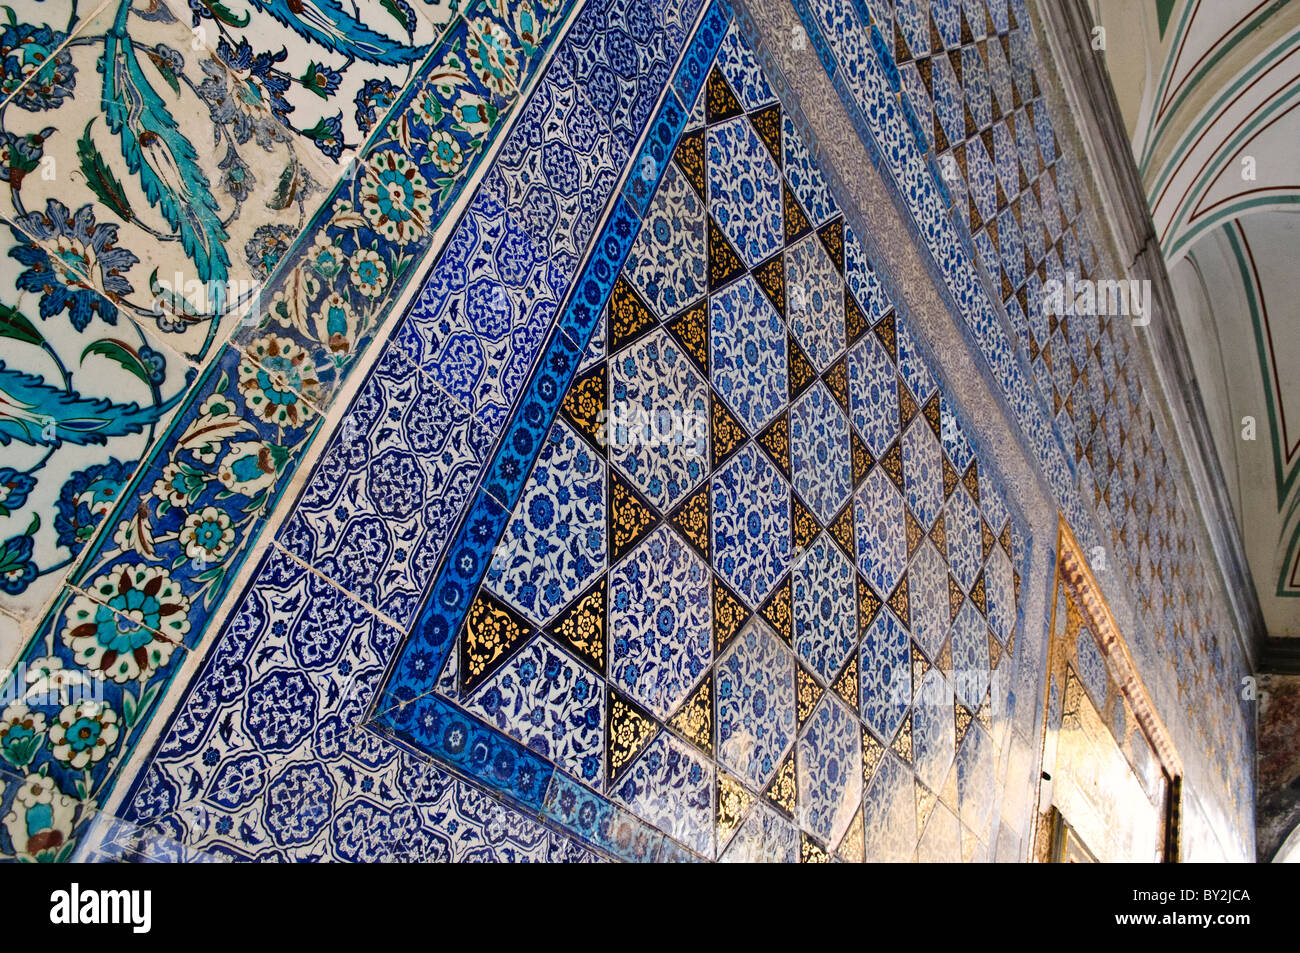 Ornate ceramic tiles lining the walls of the audience chamber ornate ceramic tiles lining the walls of the audience chamber also known as the chamber of petitions in turkish arz odas dailygadgetfo Images